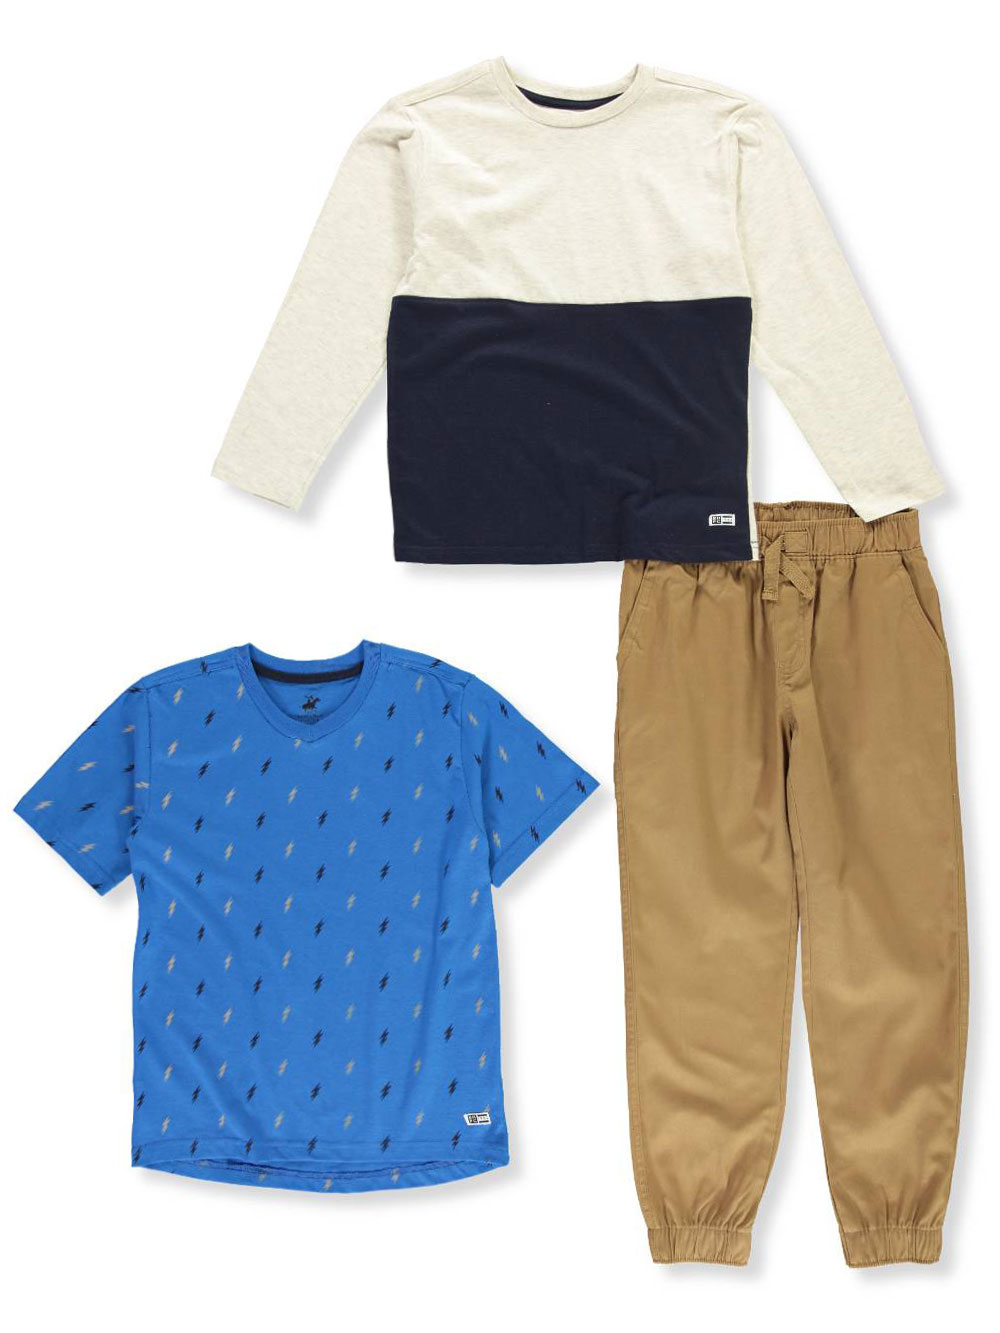 Size 8 Pant Sets for Boys